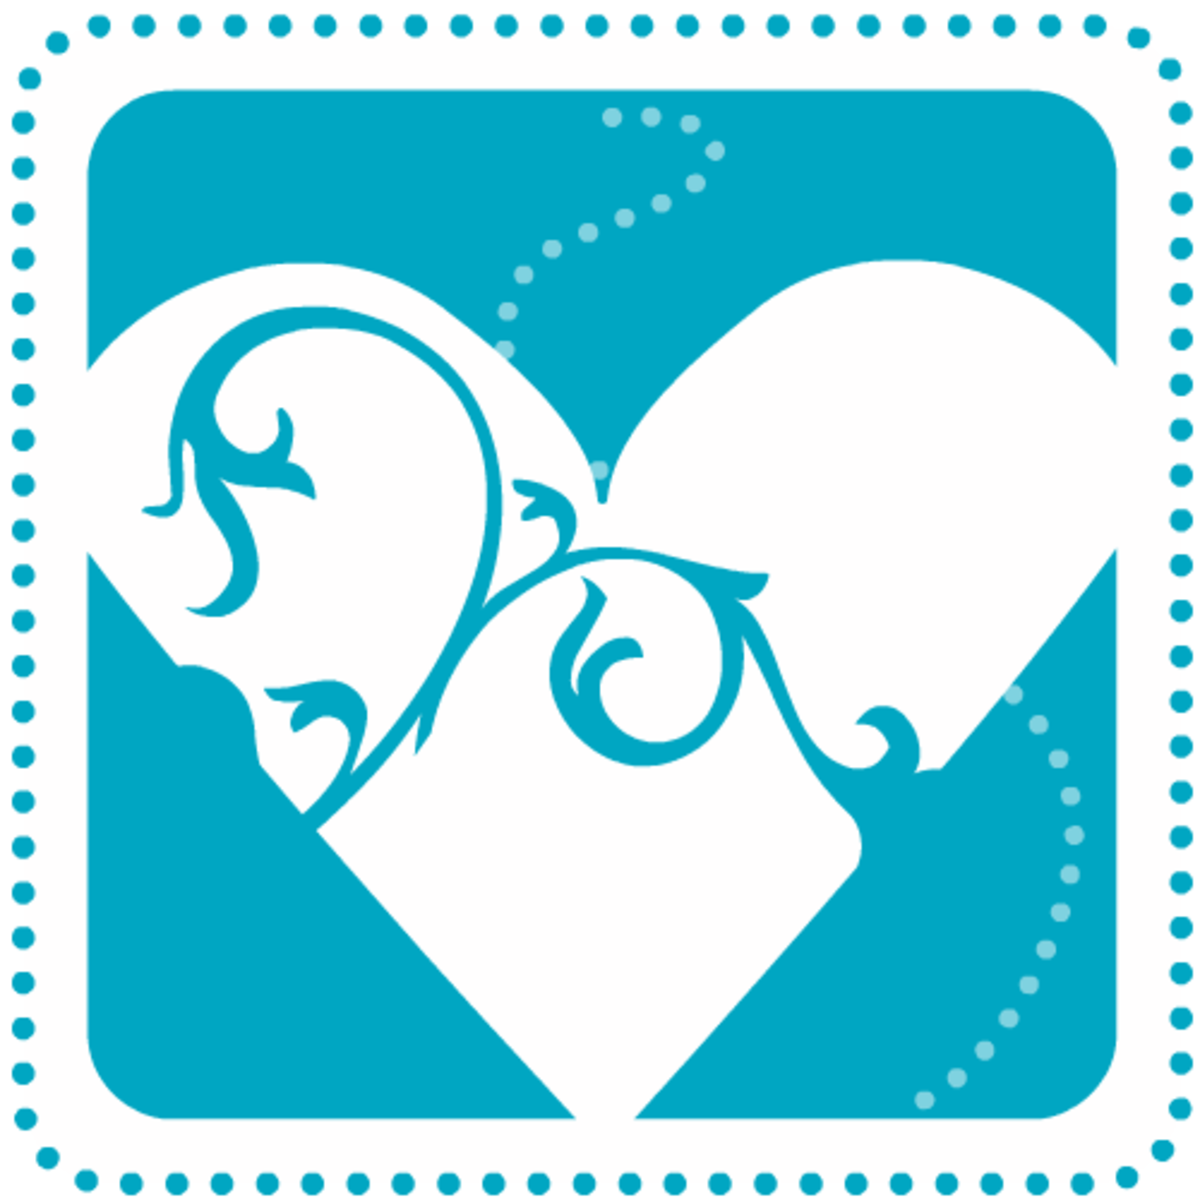 Free Valentine's Day clip art: Turquoise heart with swirls and dots